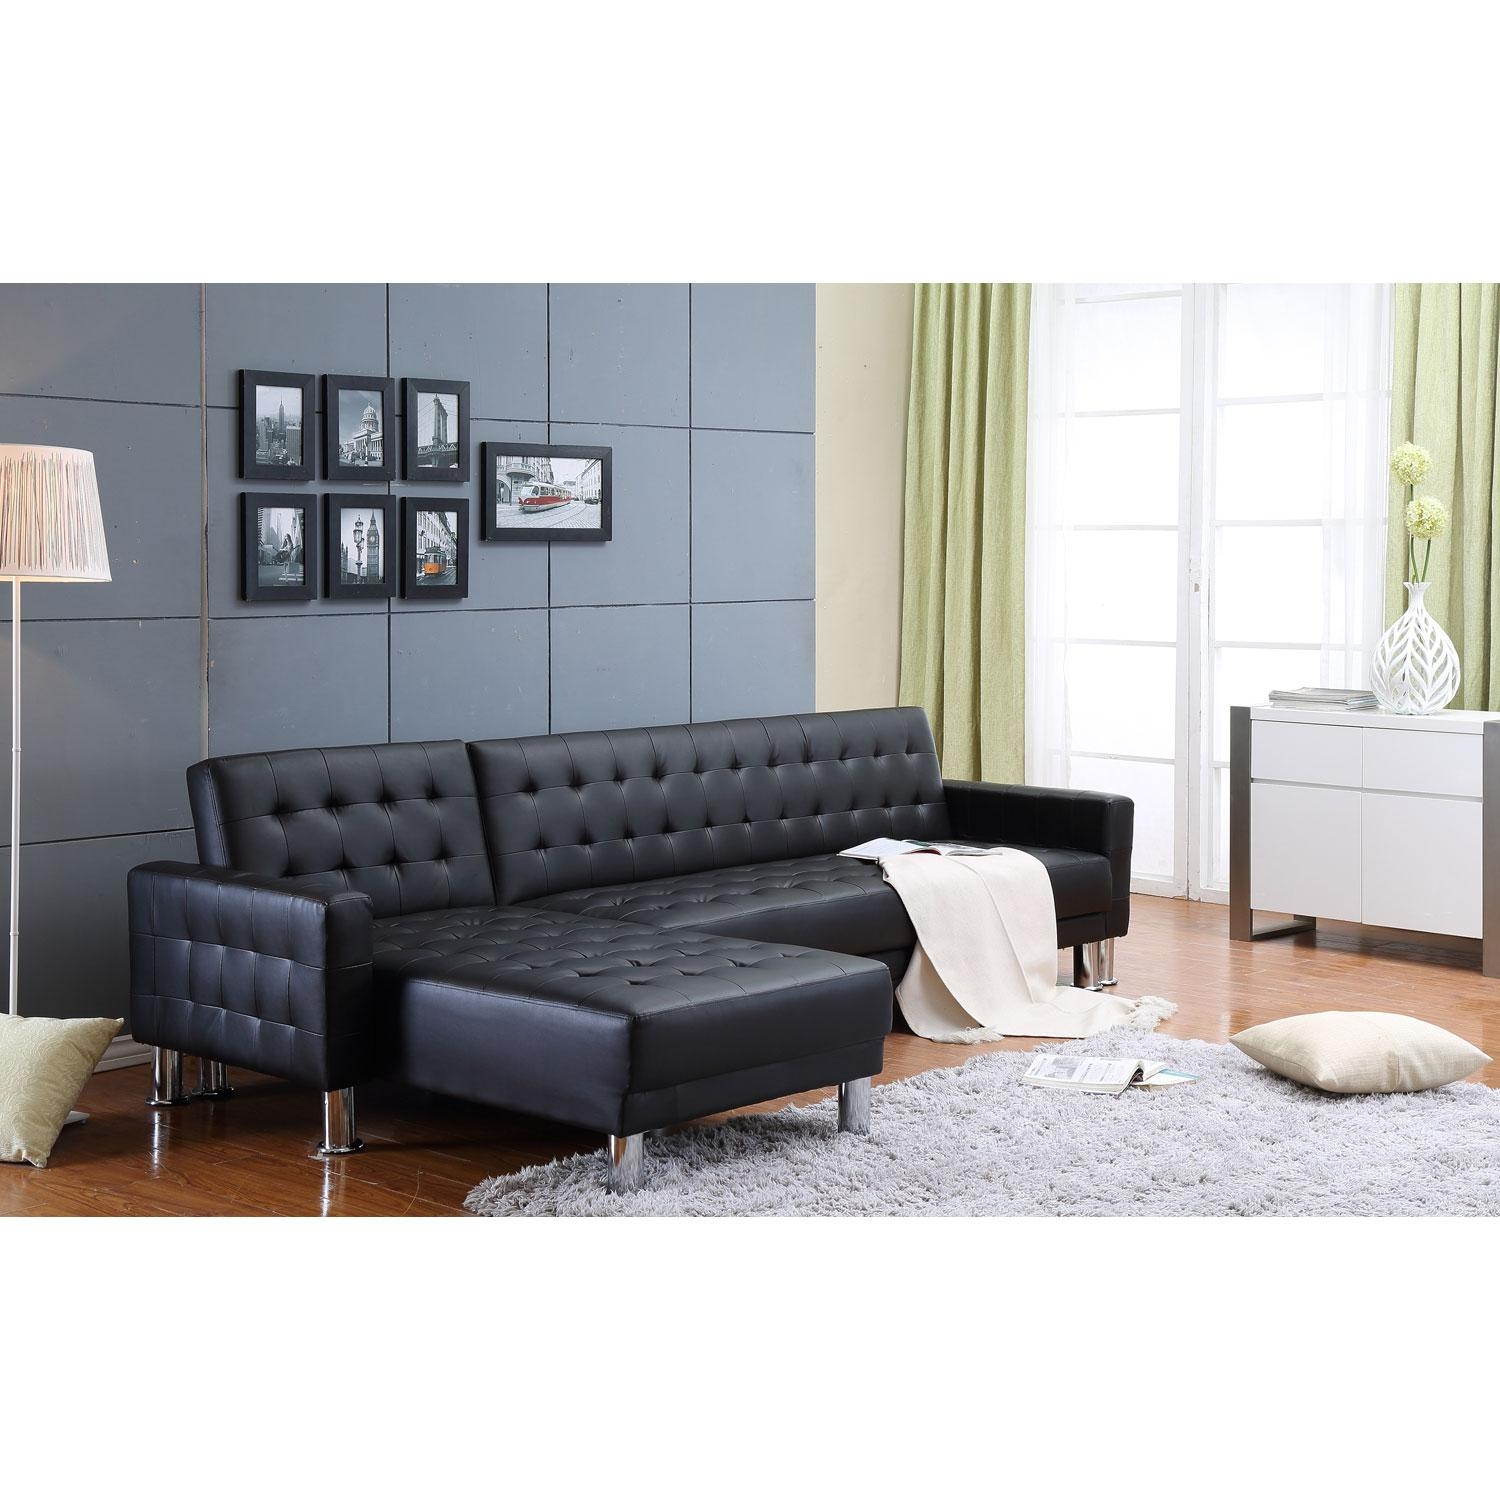 Marsden Black Tufted Bi Cast Leather 2 Piece Sectional Sofa Bed Within Individual Piece Sectional Sofas (Image 11 of 20)